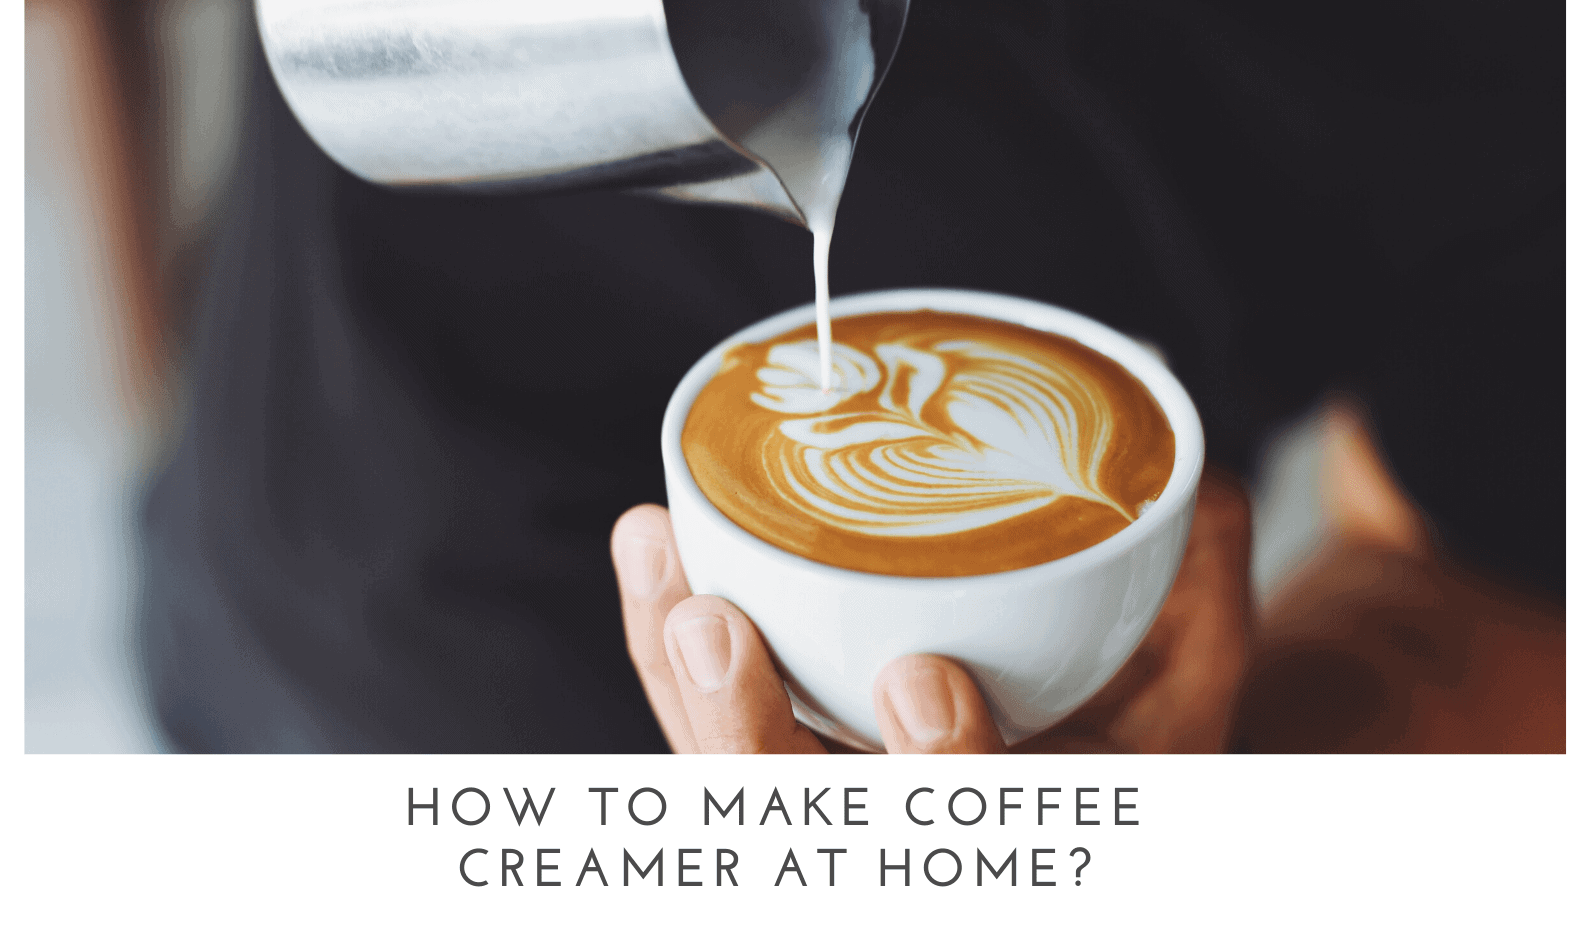 How To Make Coffee Creamer at Home?